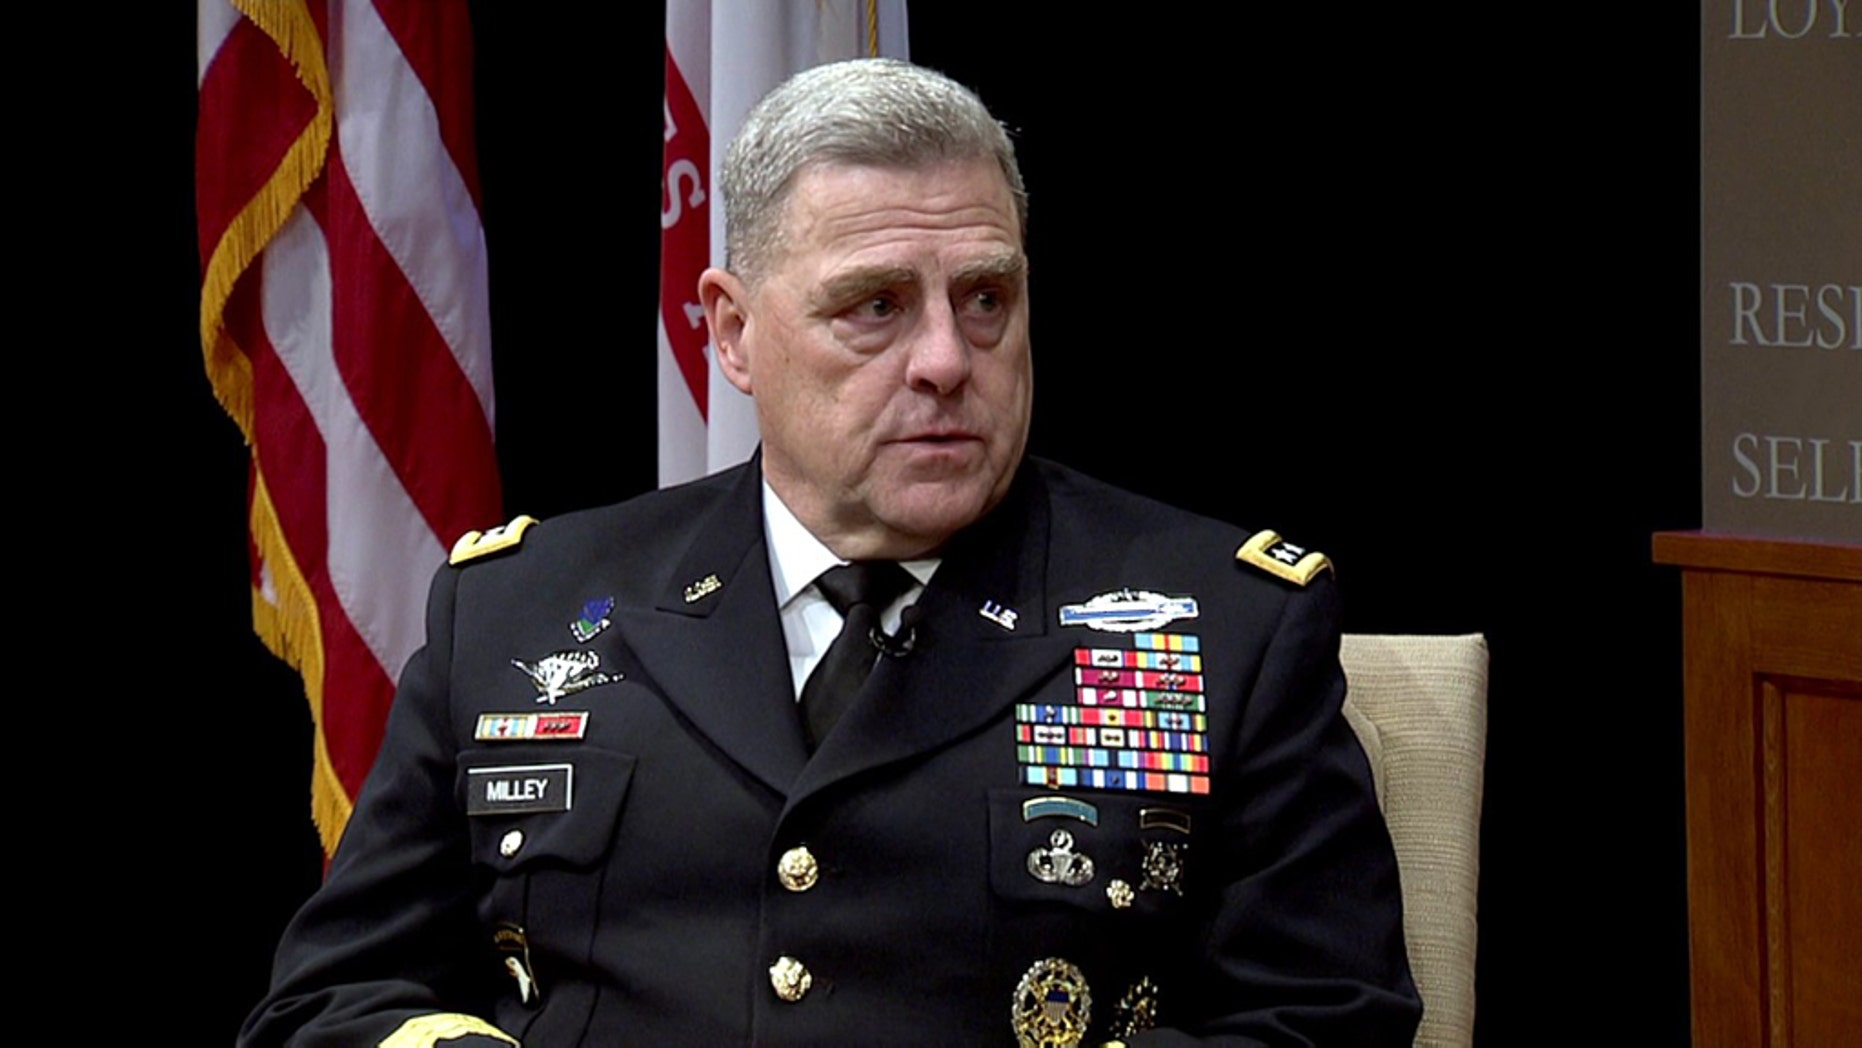 President Trump will name Army Chief of Staff Gen. Mark Milley to succeed Chairman of the Joint Chiefs of Staff Gen. Joseph Dunford, Fox News has learned.  (YouTube)